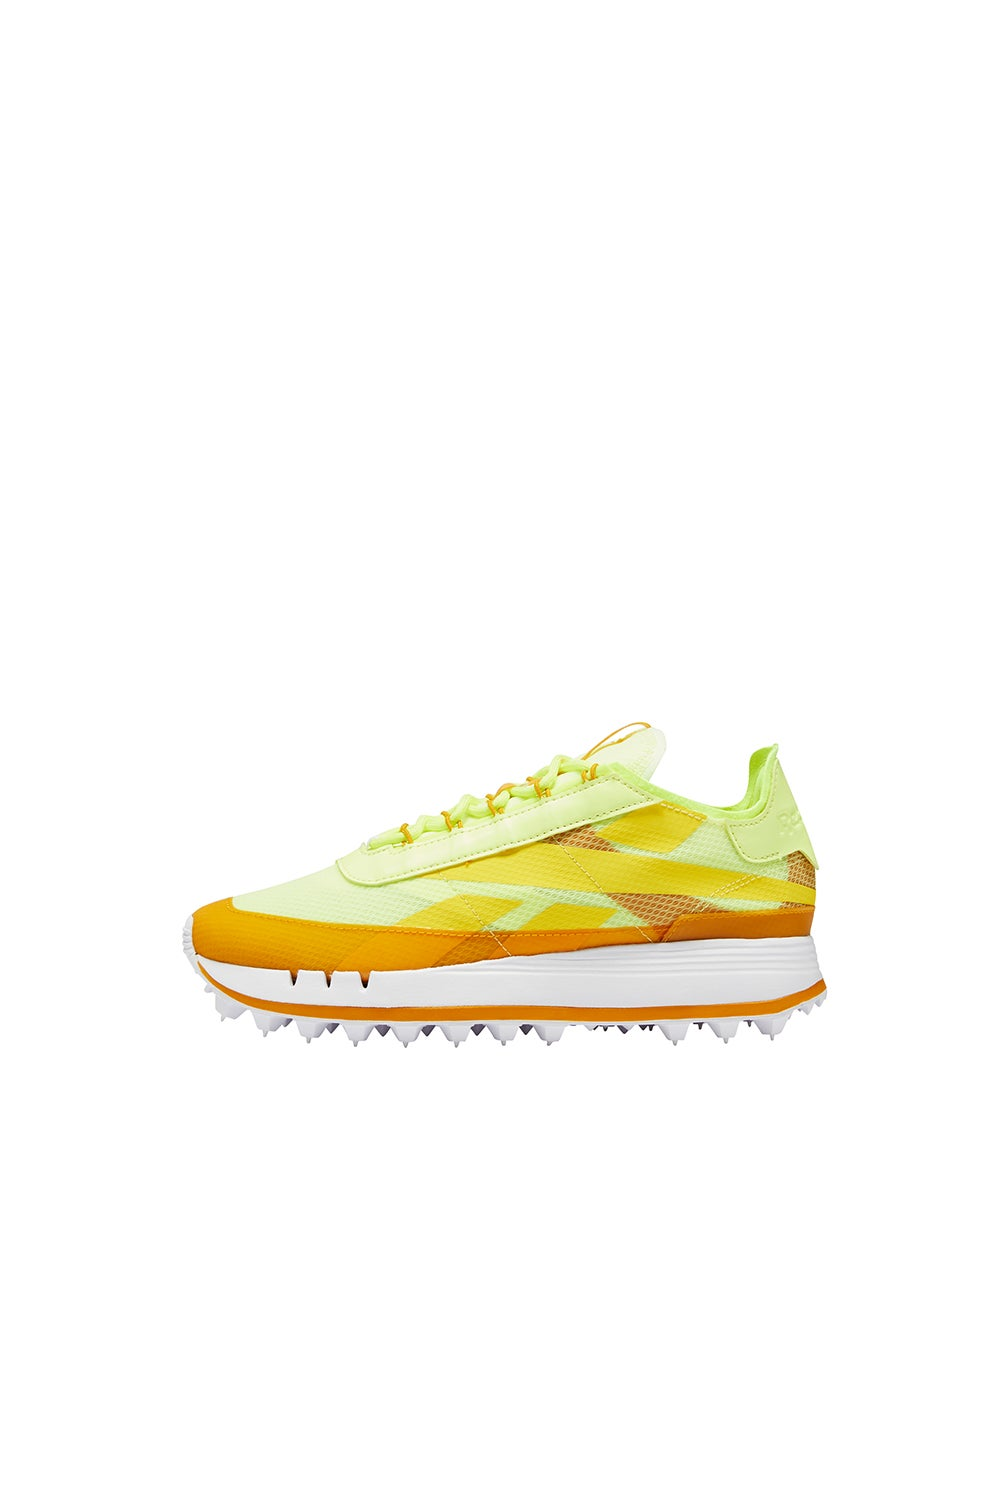 Reebok Legacy 83 Shoes Energy Glow/Bright Ochre/Yellow Flare